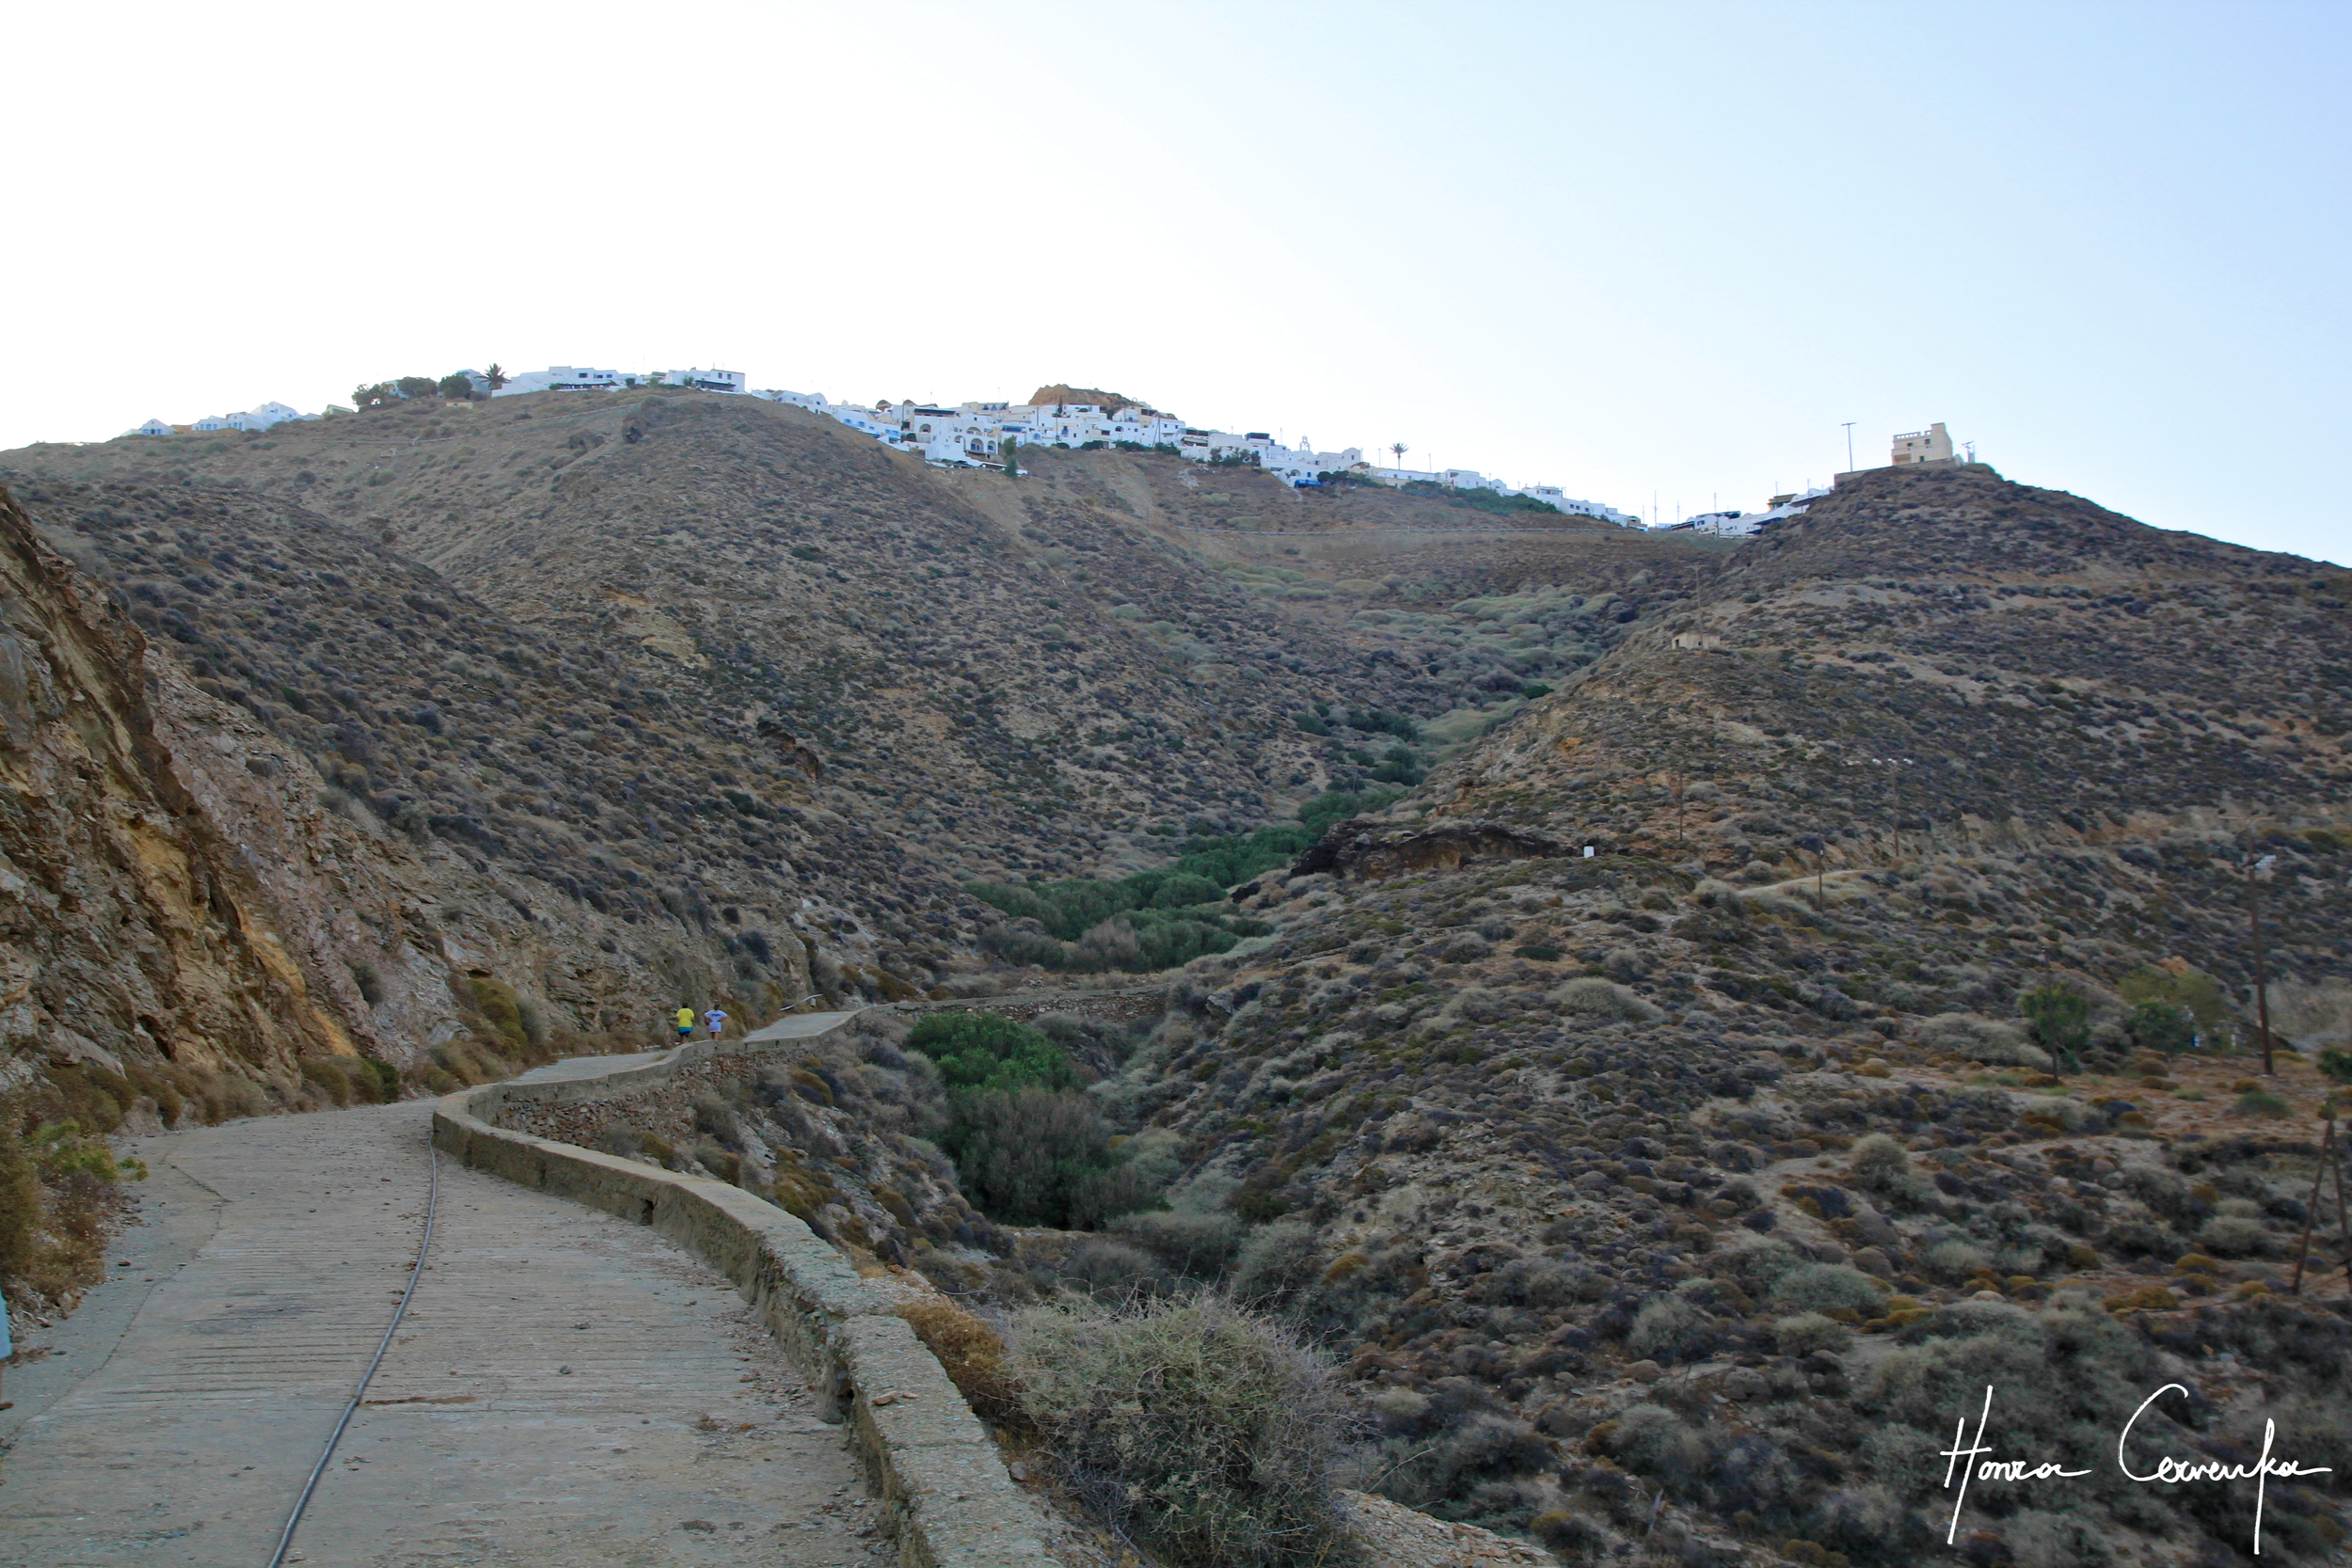 The path leading up to Chora atop.